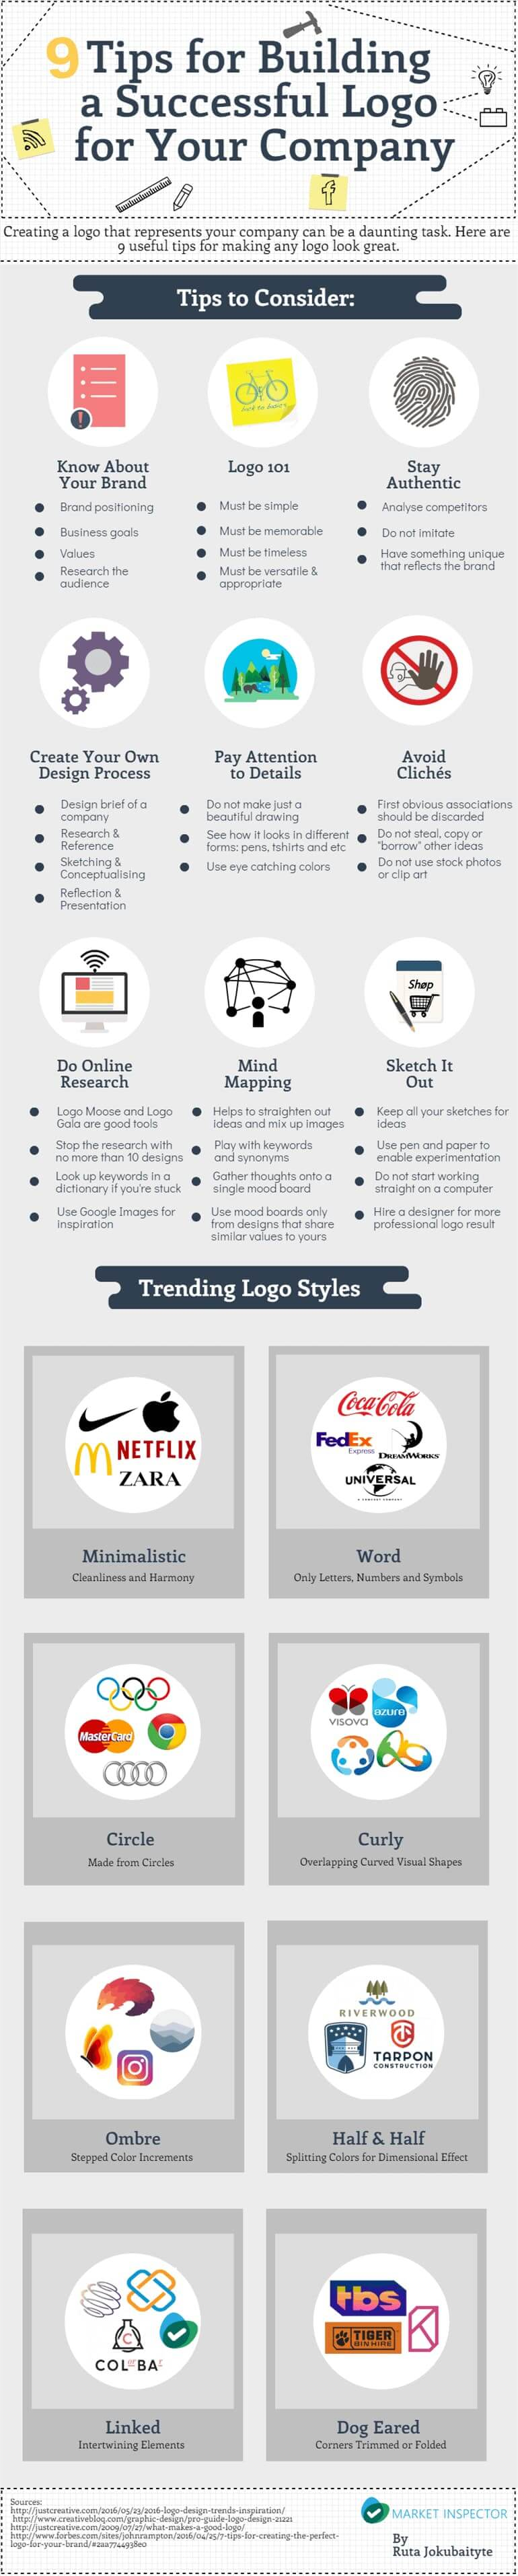 Successfull Company Logos